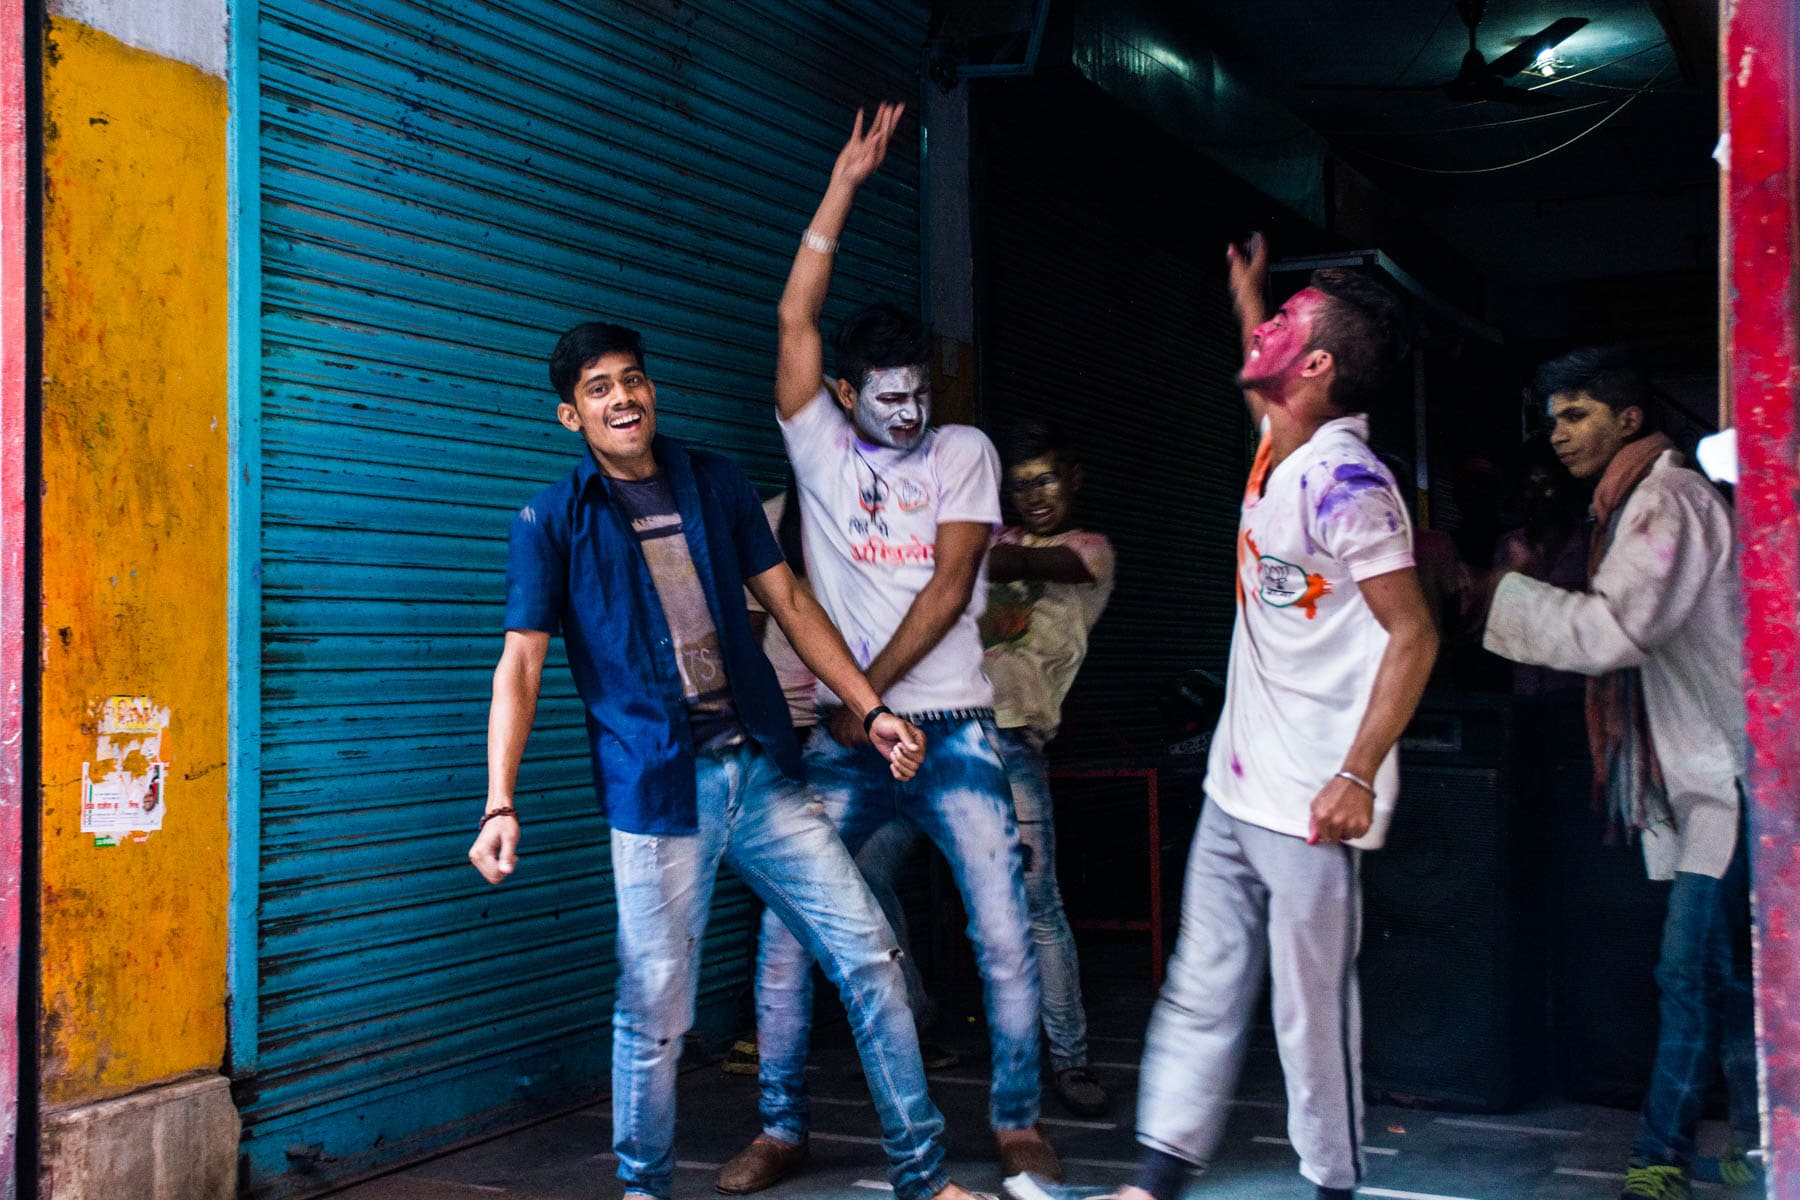 What you need know about playing Holi in Varanasi, India - Boys having a dance party - Lost With Purpose